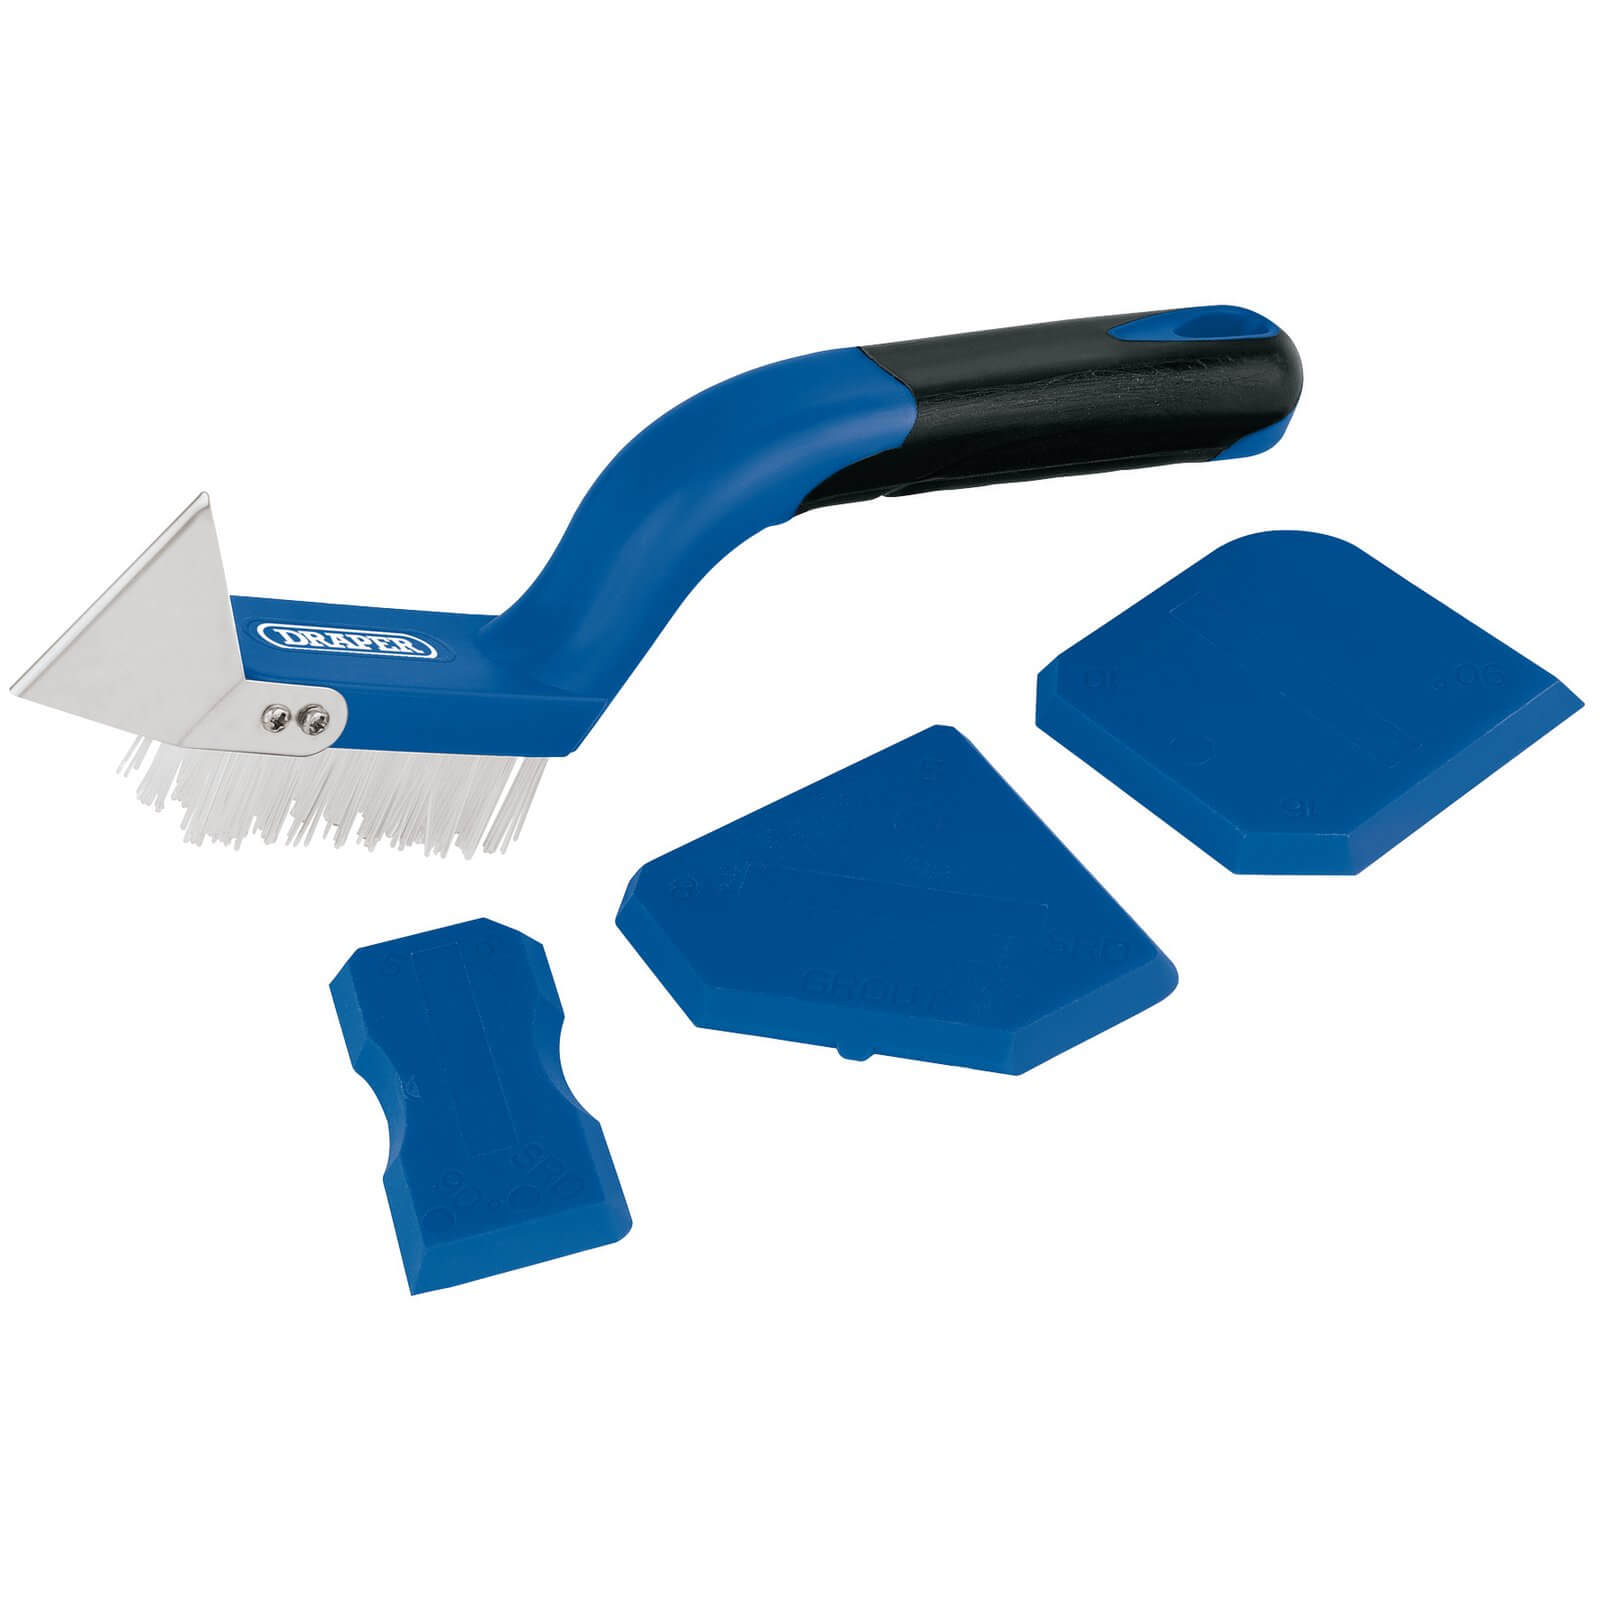 Image of Draper 4 Piece Grout Smoothing Set